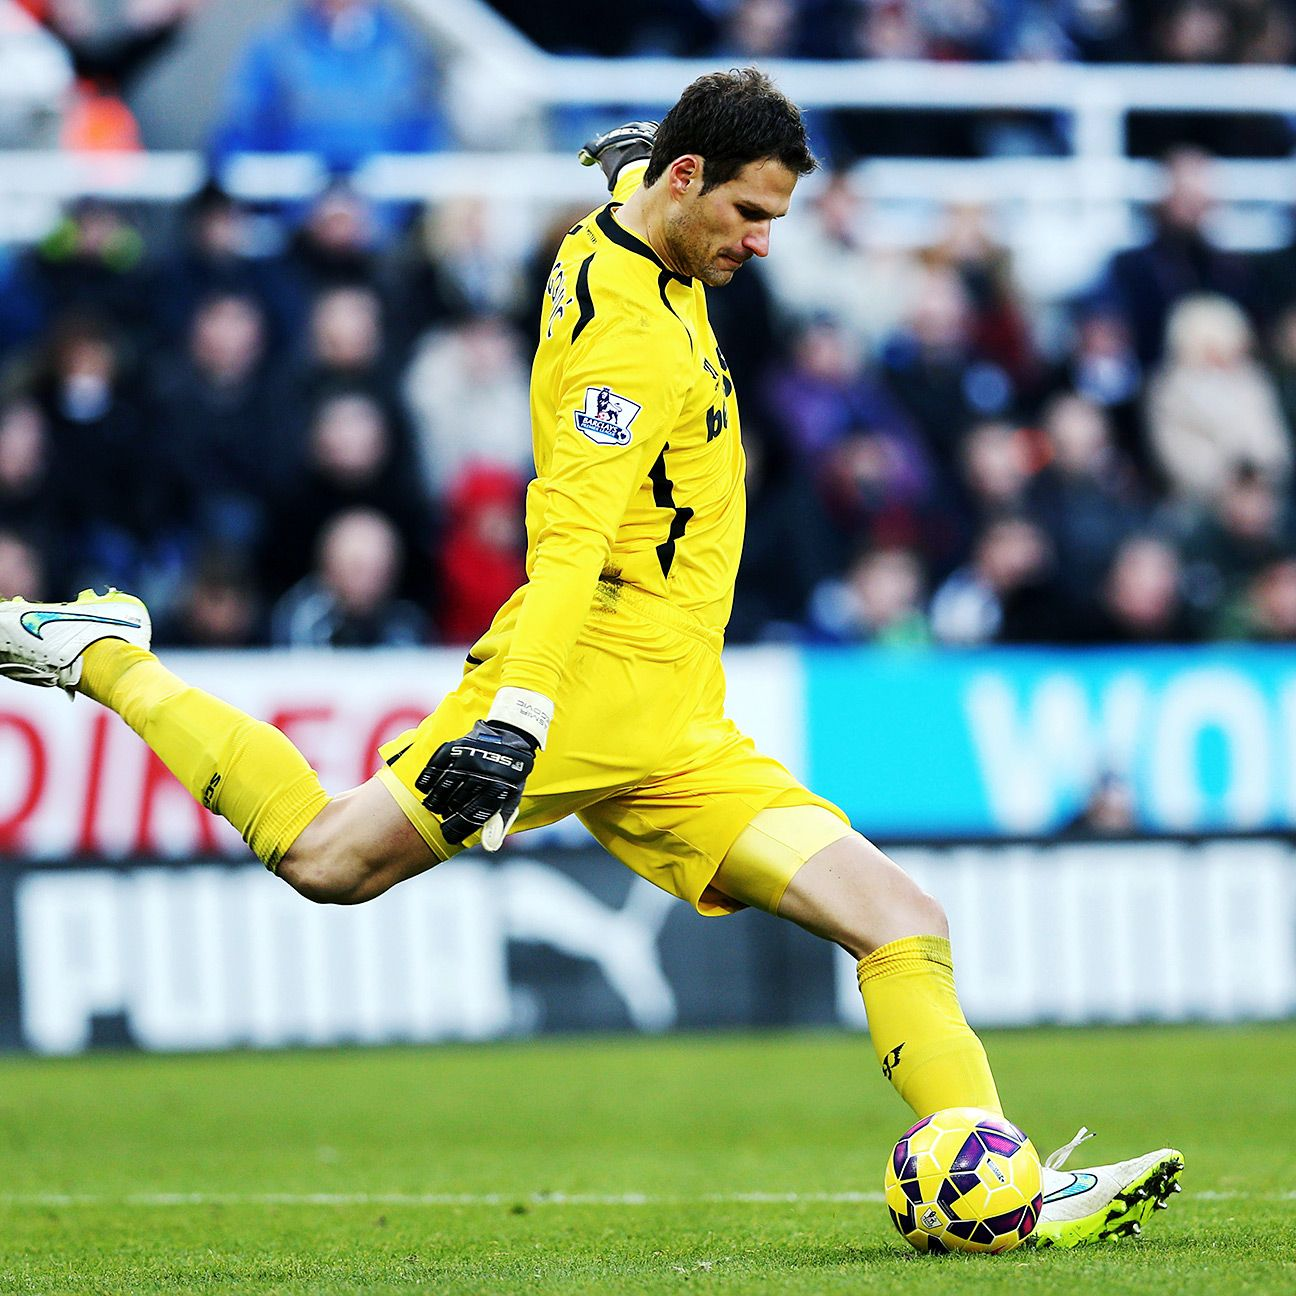 Stoke goalkeeper Asmir Begovic could be lured away this summer by one of Europe's top clubs.